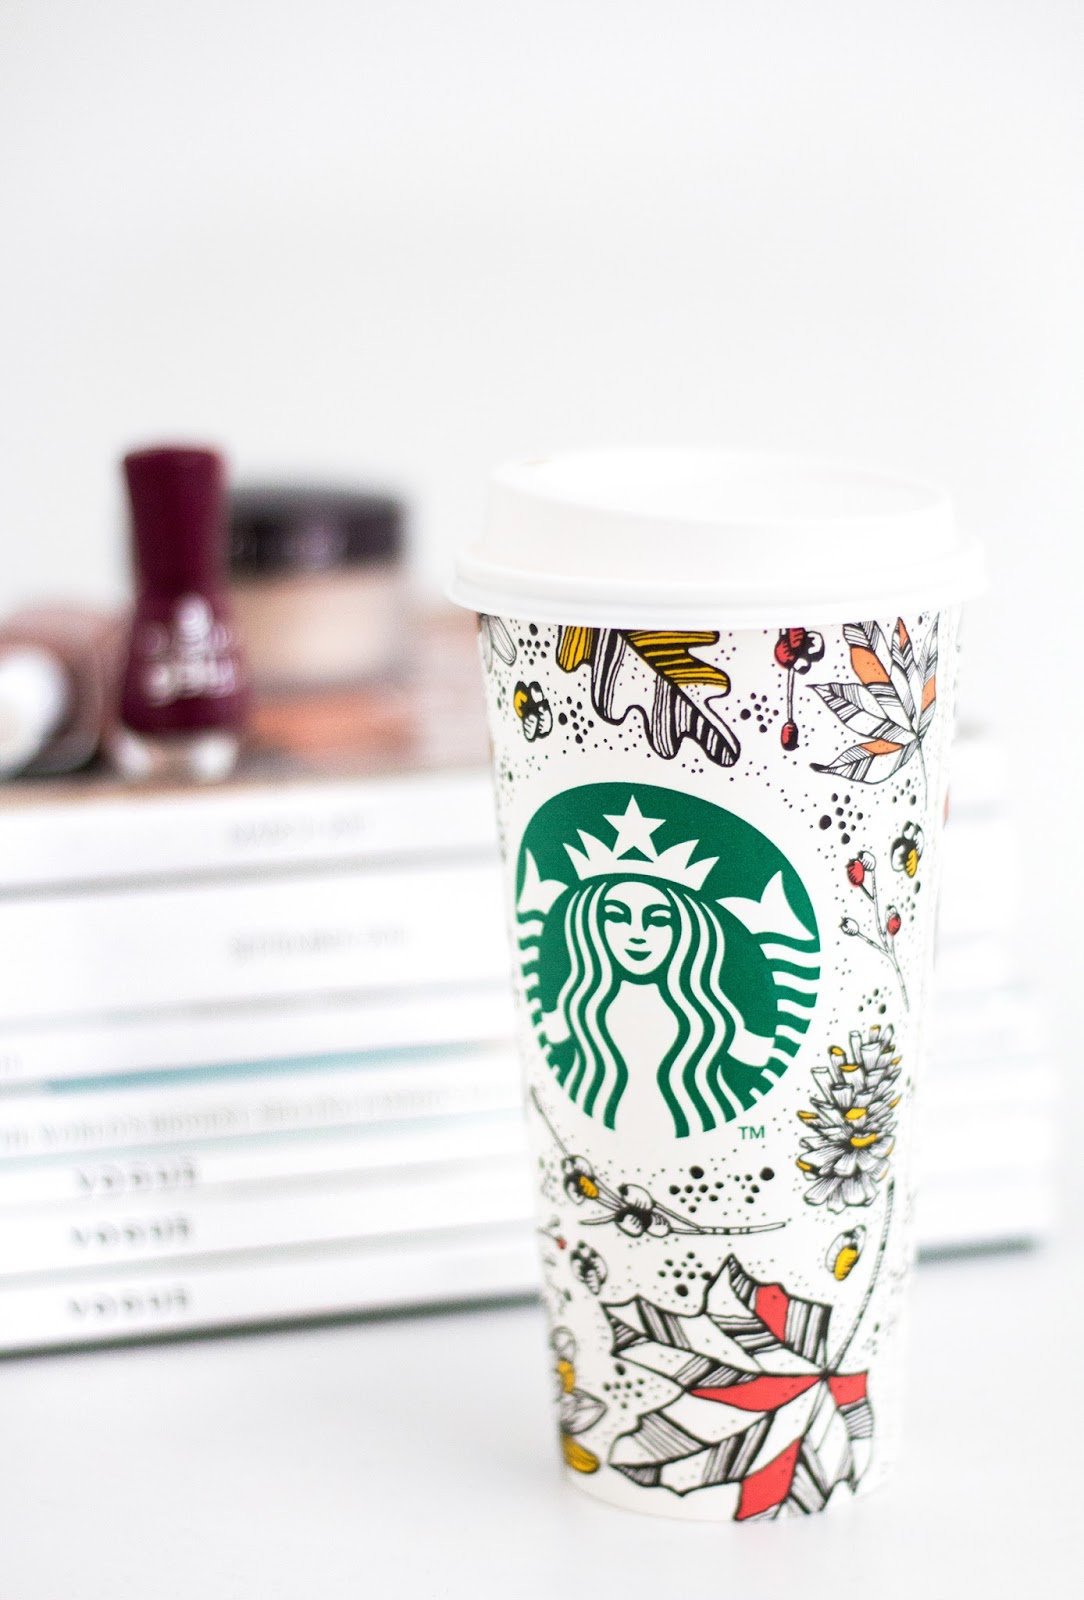 Autumn Starbucks | Autumnal cup